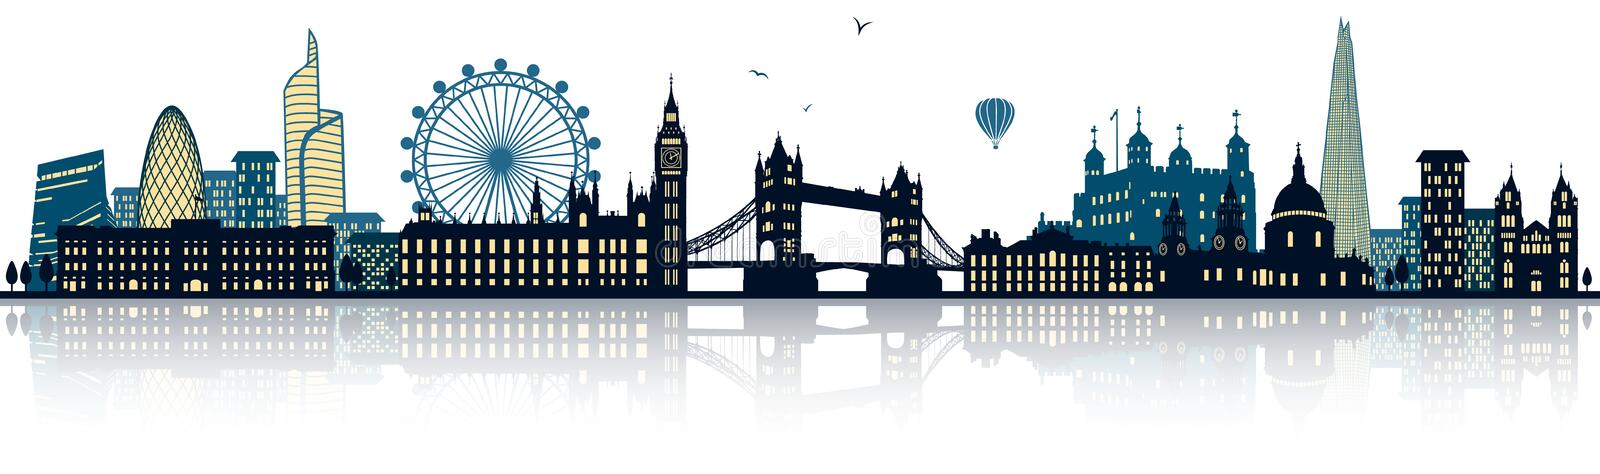 London detailed skyline vector vector illustration